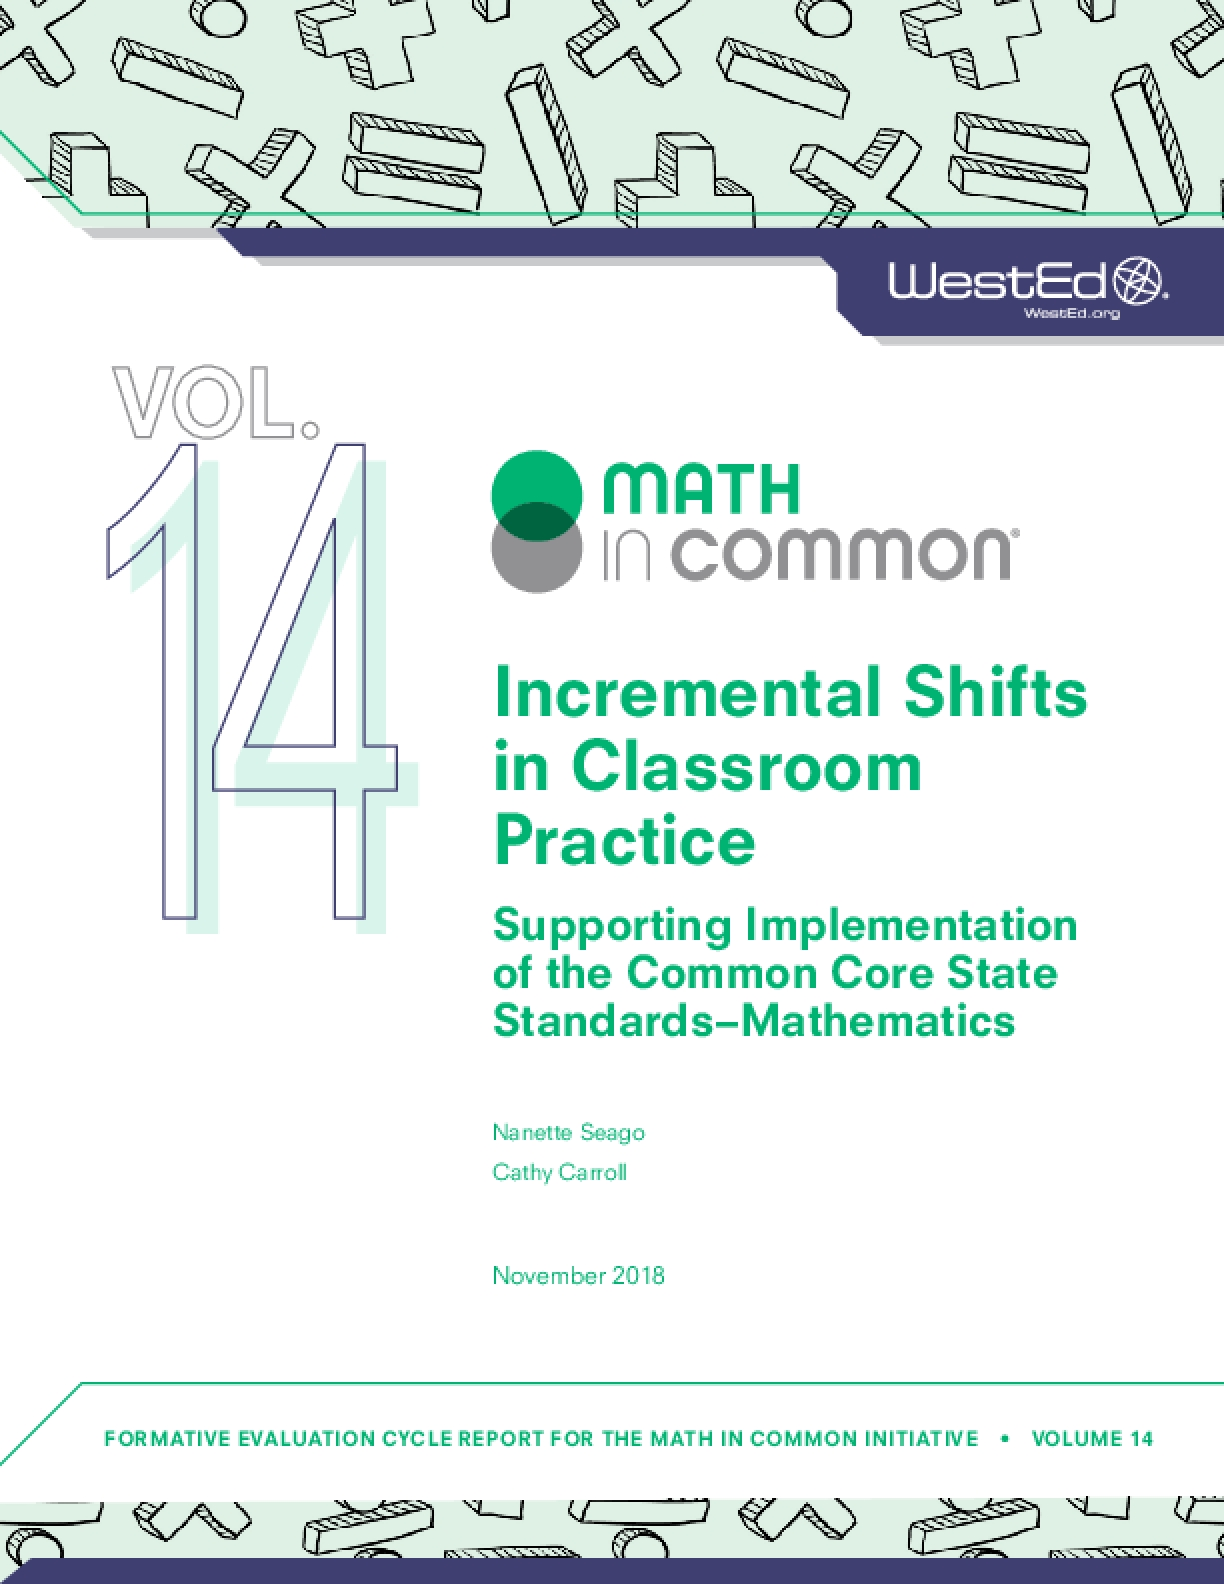 Incremental Shifts in Classroom Practice: Supporting Implementation of the Common Core State Standards-Mathematics